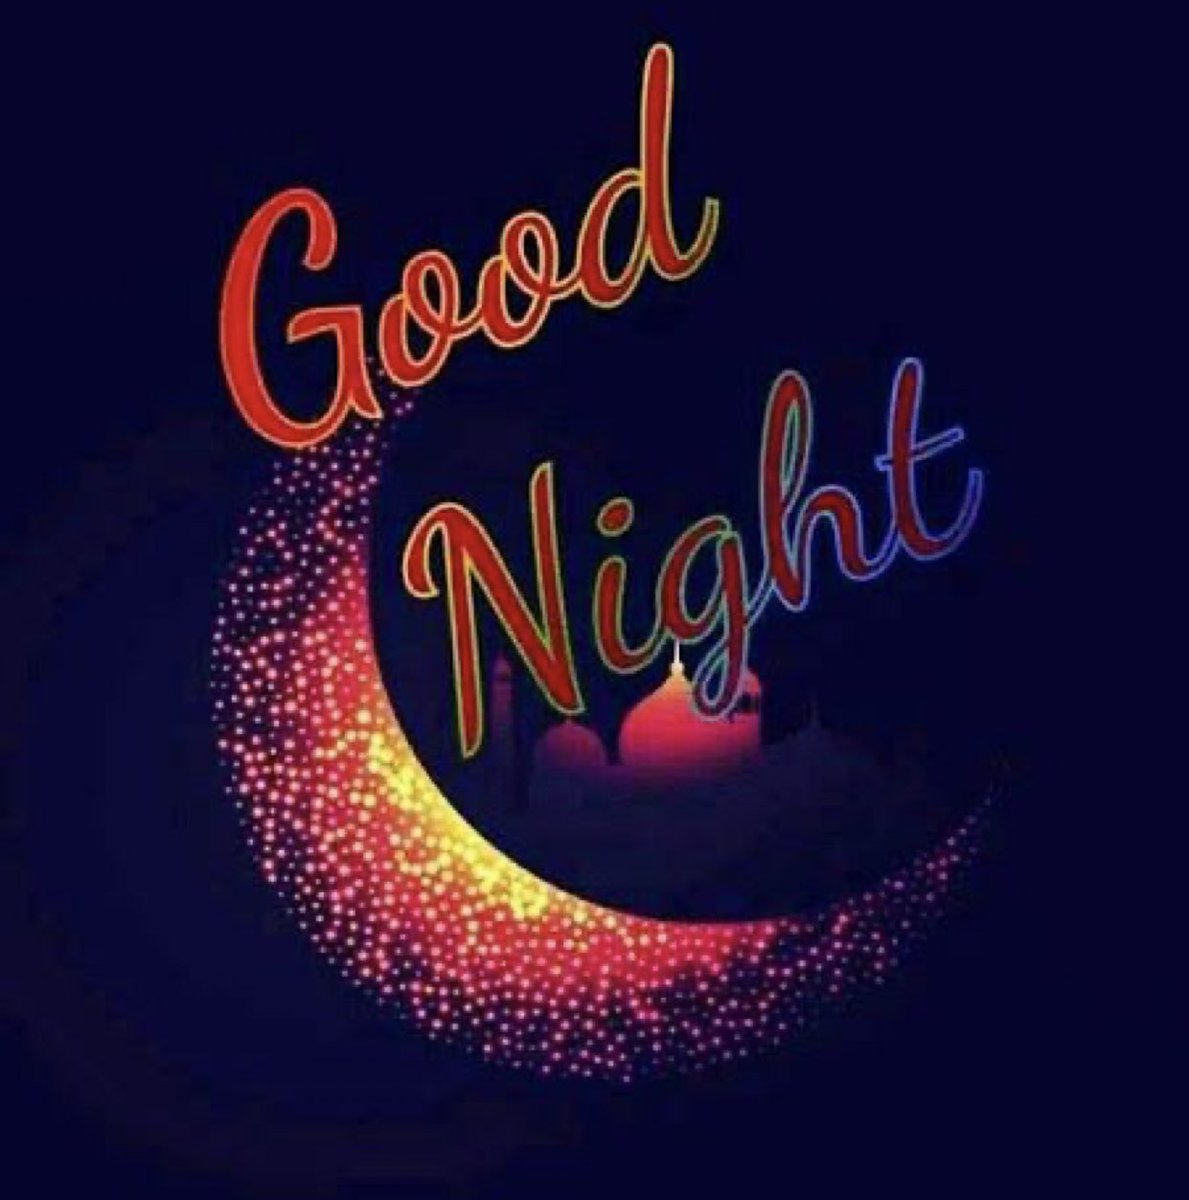 You're always welcome my friend Alice  My name is Gorav here night  I wish you Good night sweet dreams  See you tomorrow where are you from??? take care Dear friend pic.twitter.com/vy934Sqbpu